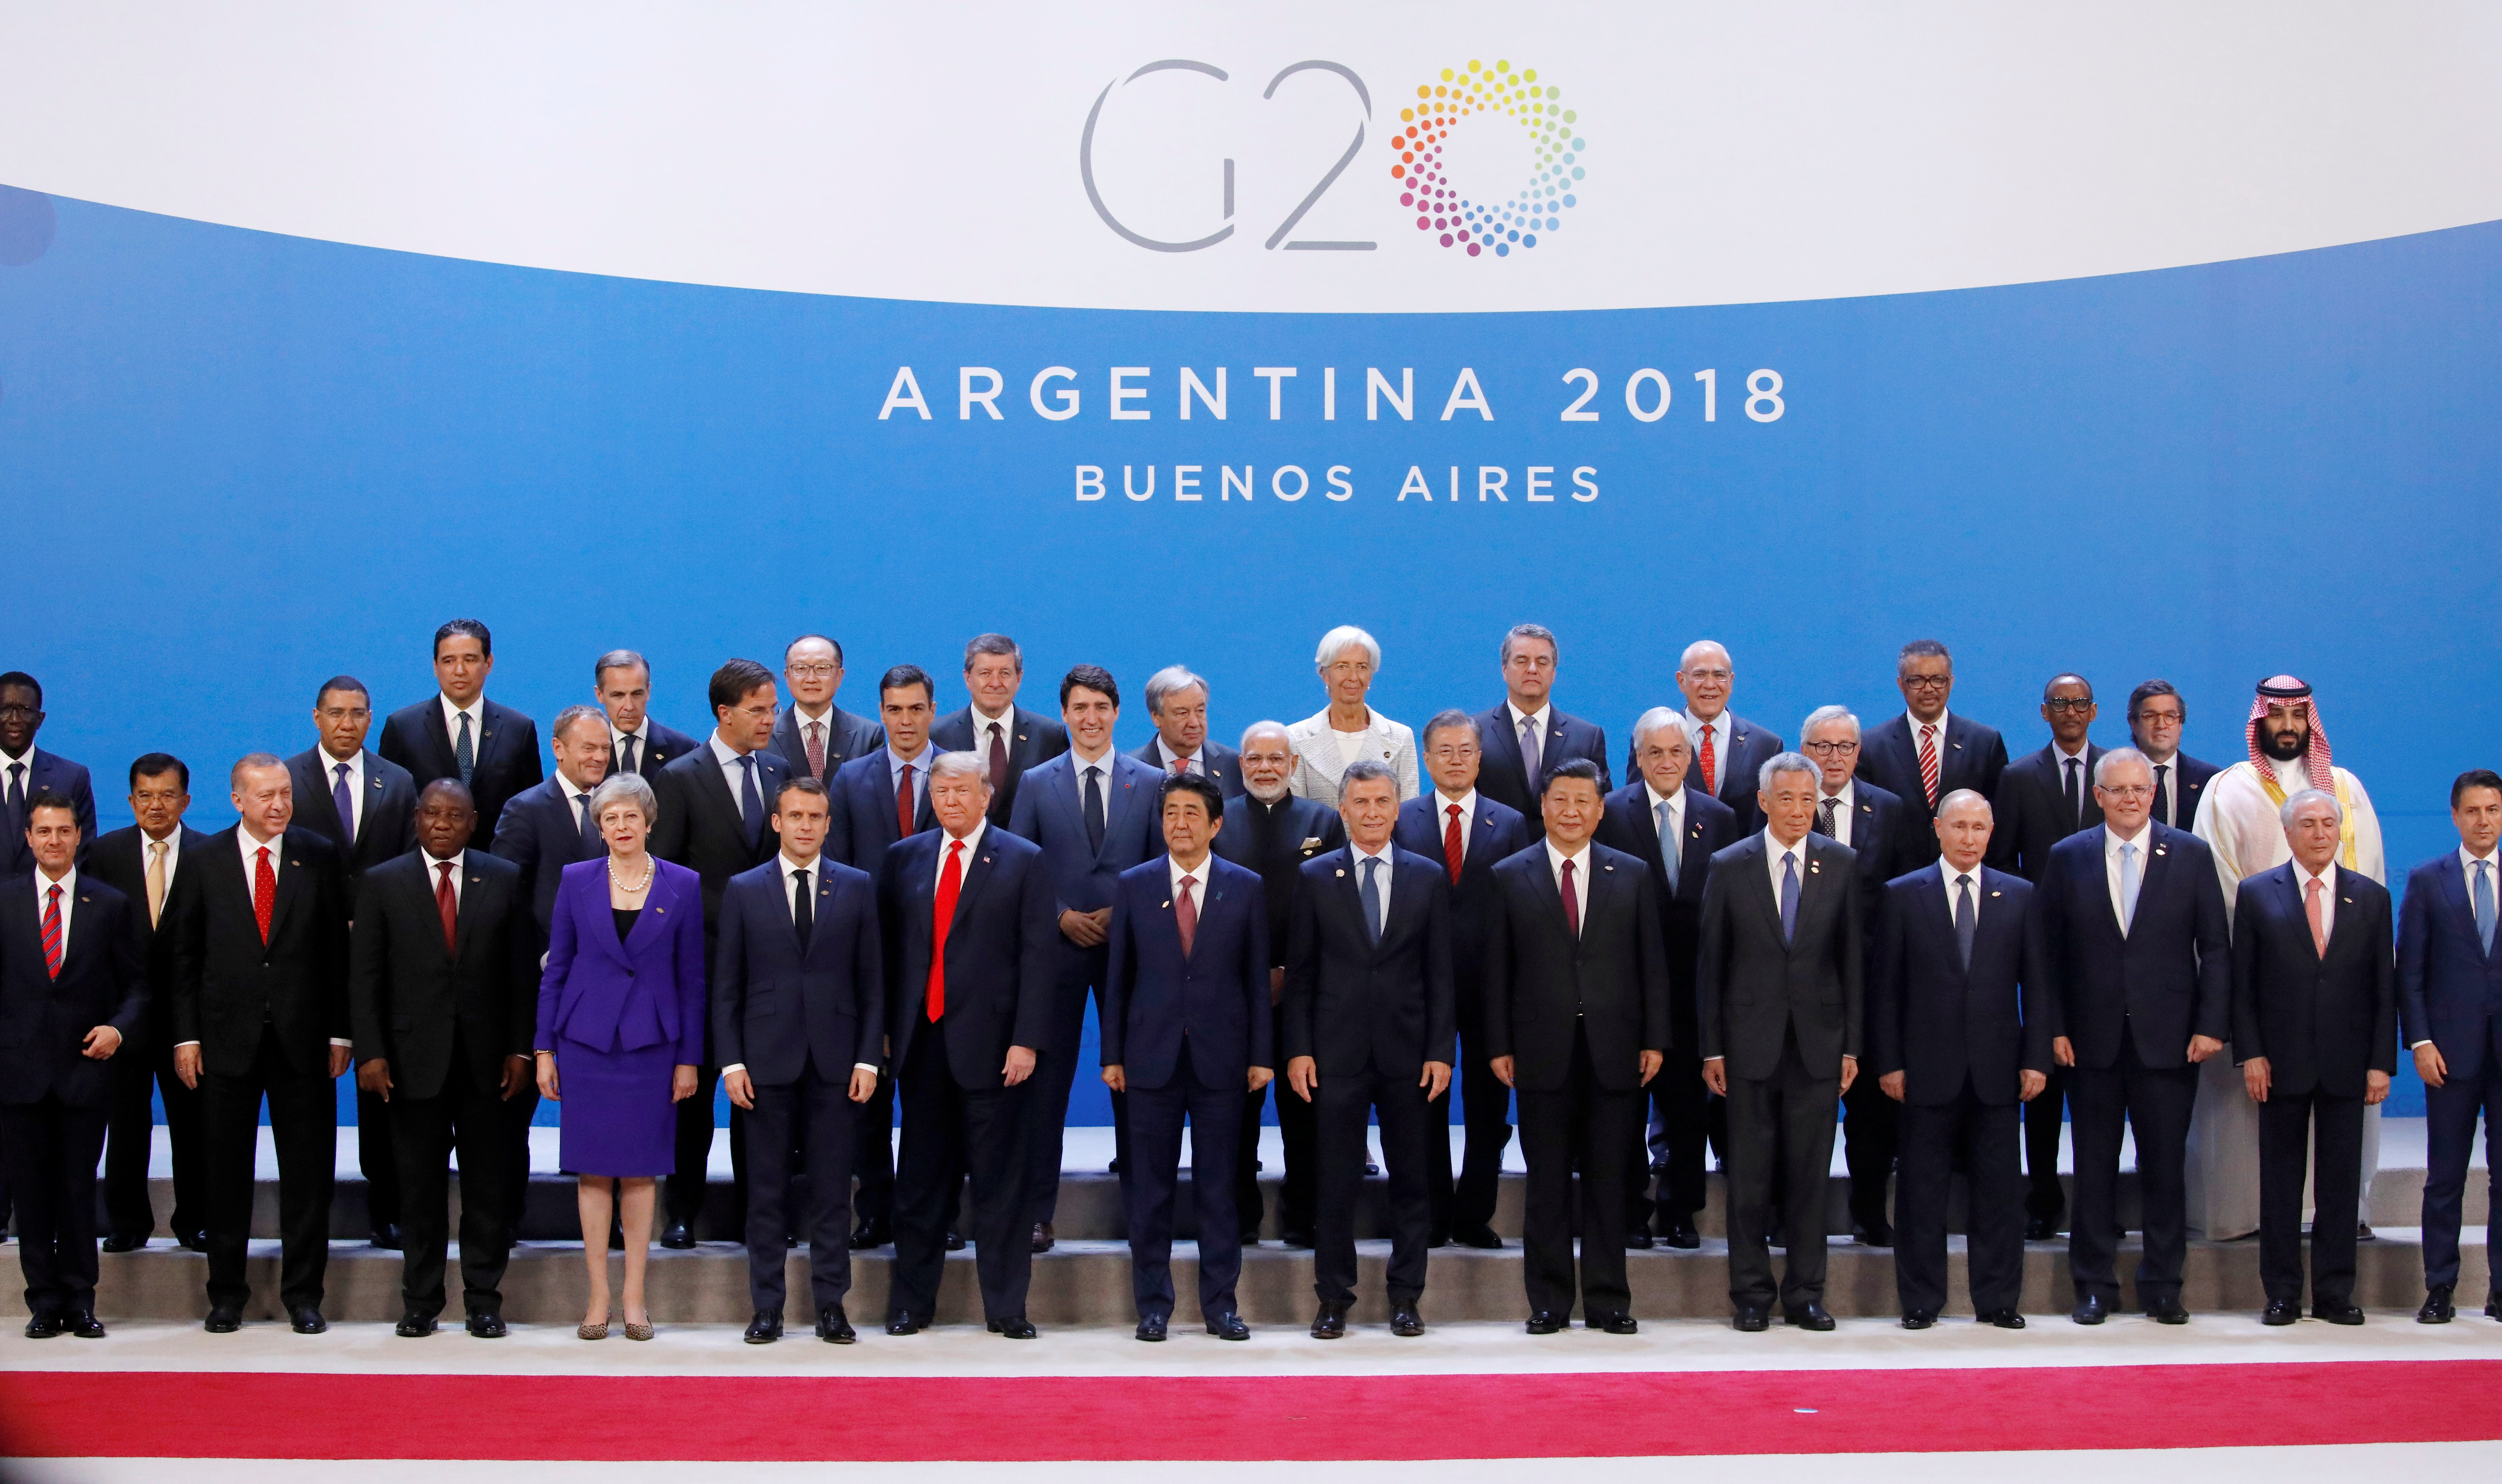 Leaders pose for a family photo during the G20 summit in Buenos Aires, Argentina November 30, 2018. REUTERS/Andres Martinez Casares/Pool